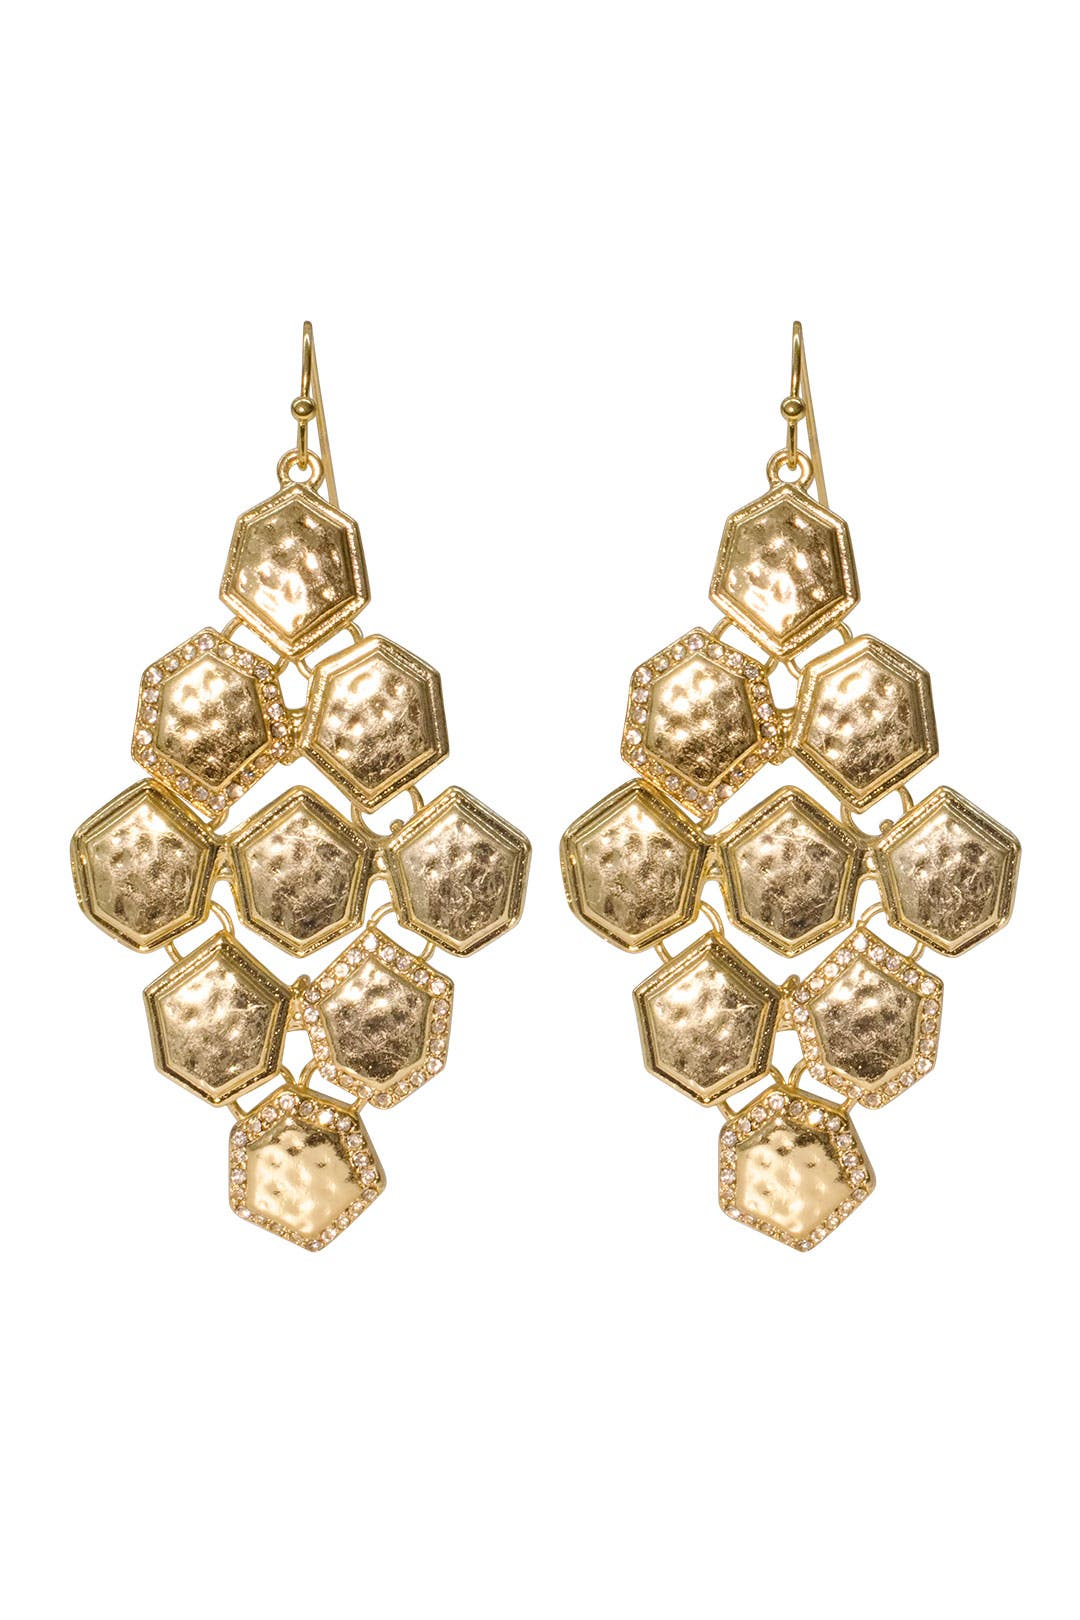 Honeycomb Chandelier Earrings by Cara Accessories